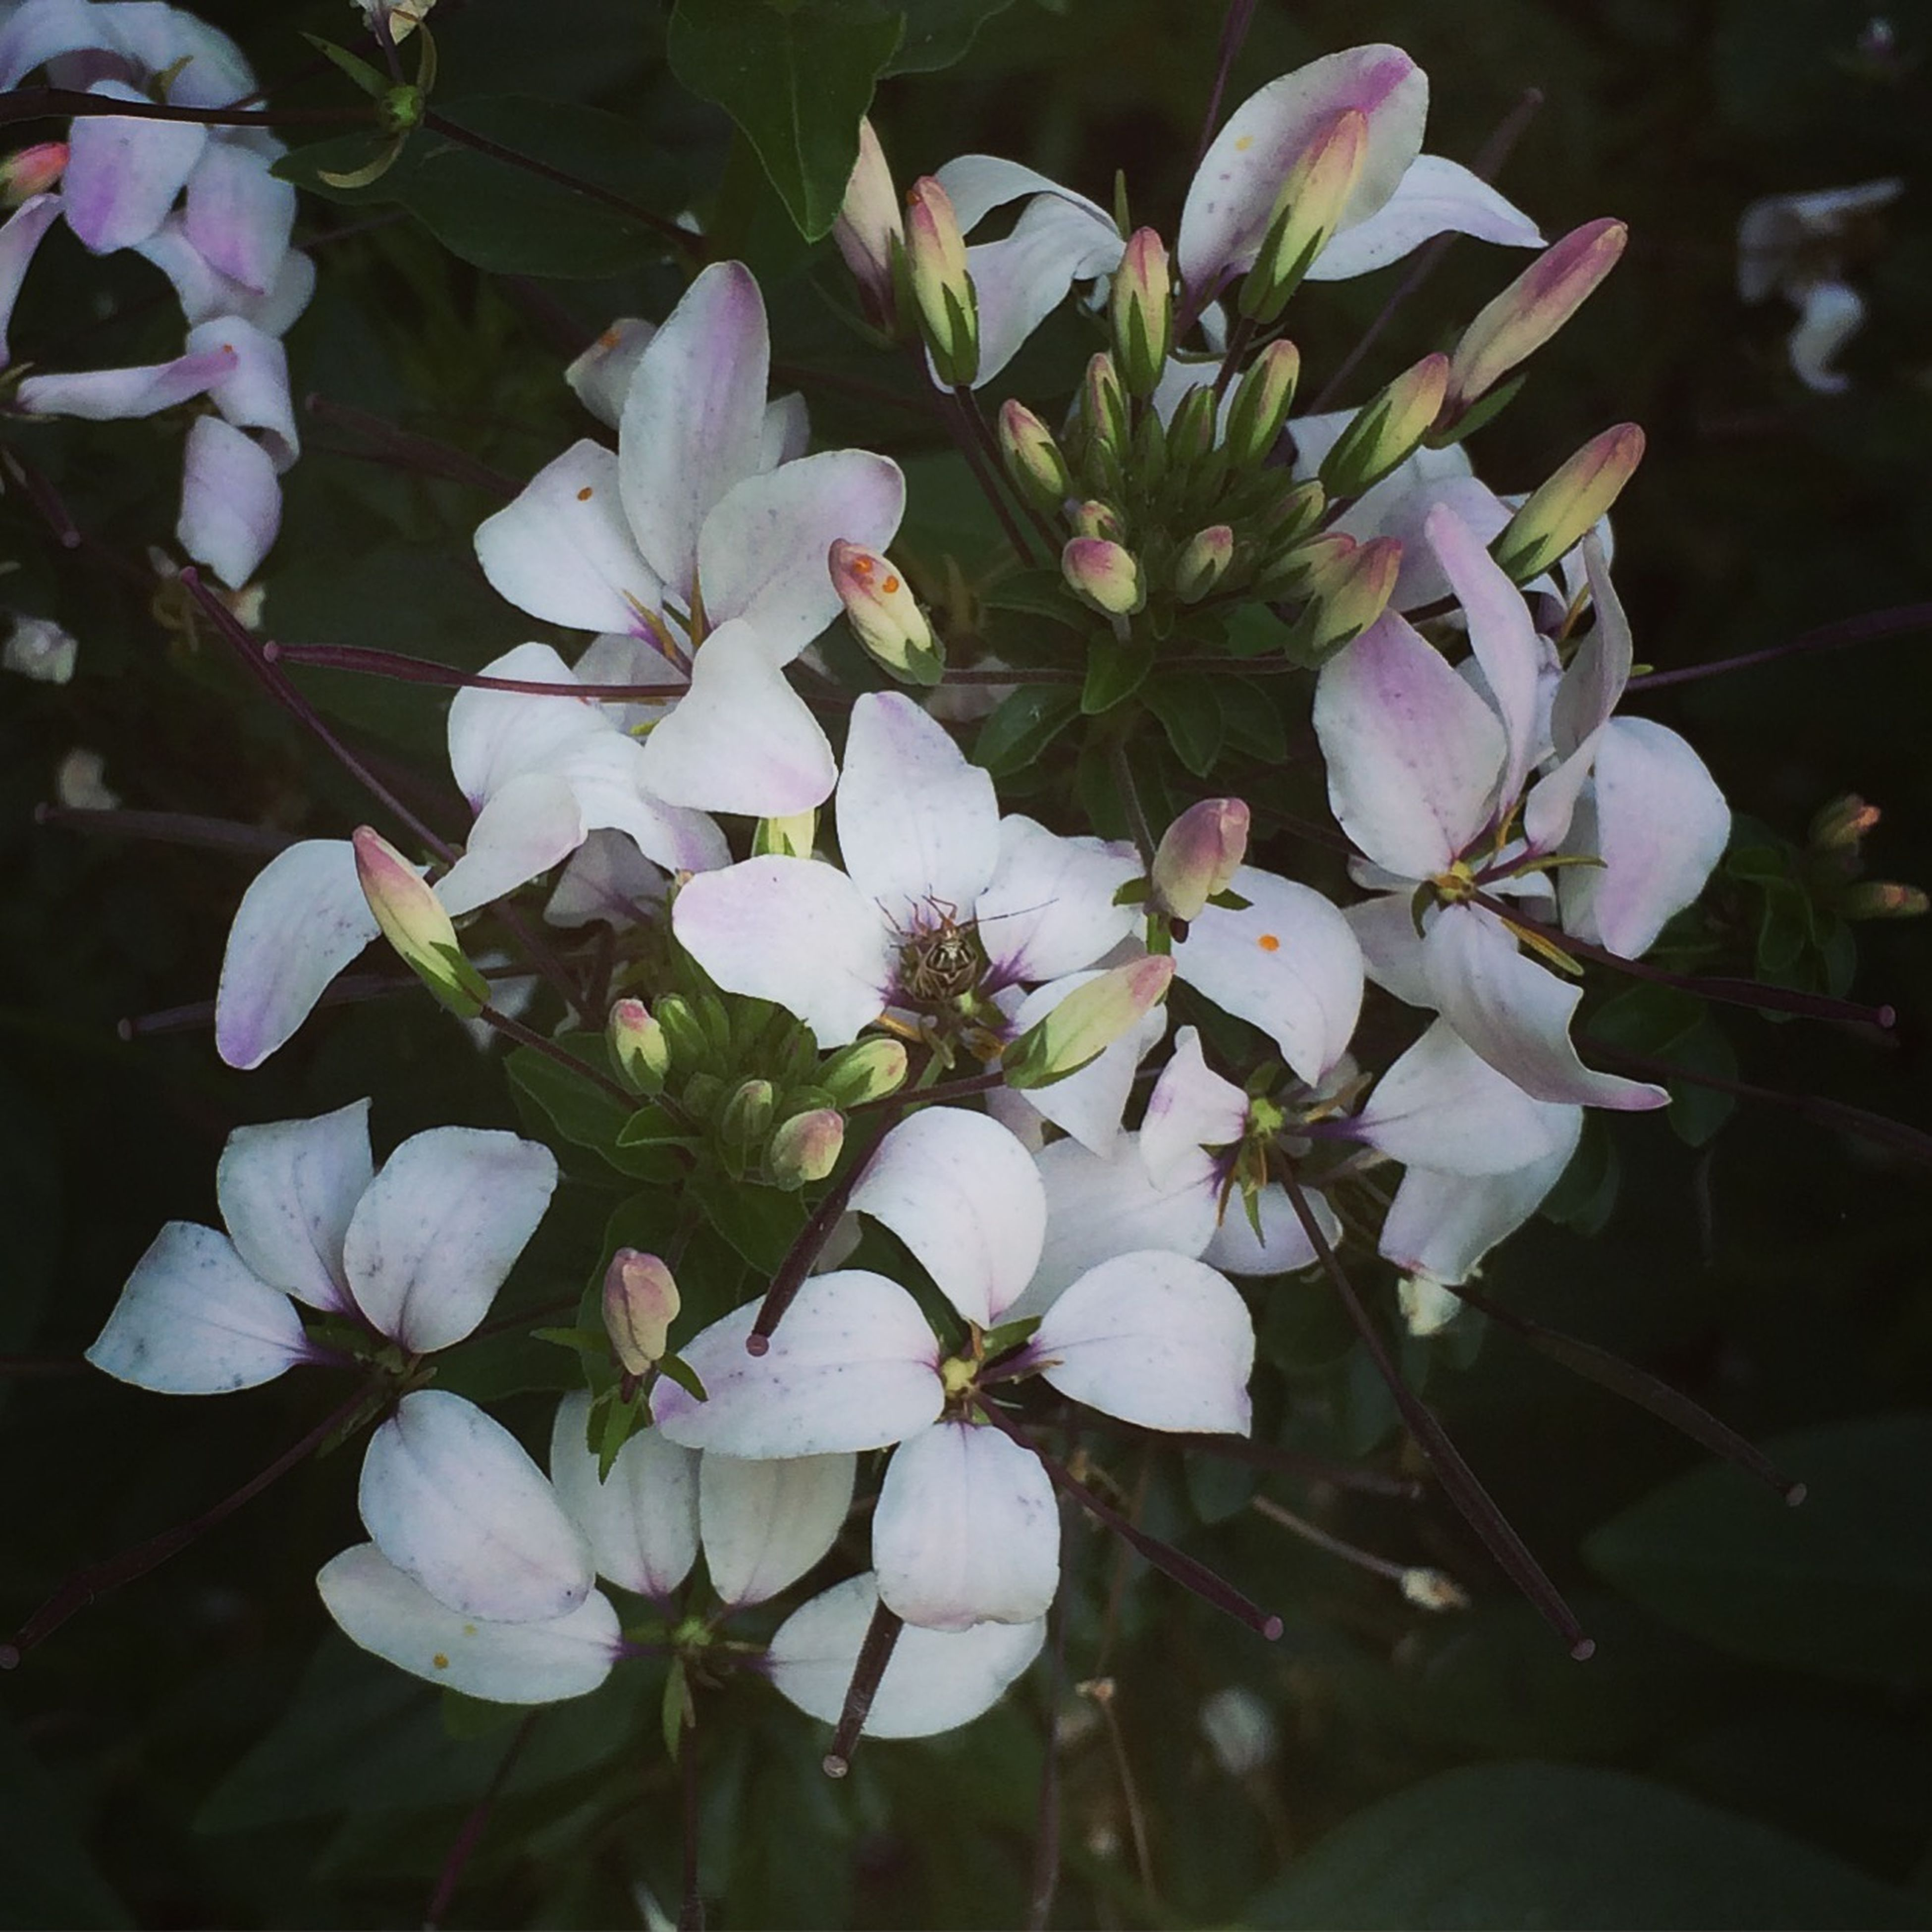 flower, growth, freshness, fragility, petal, beauty in nature, nature, plant, blooming, close-up, flower head, white color, focus on foreground, leaf, in bloom, park - man made space, outdoors, day, high angle view, no people